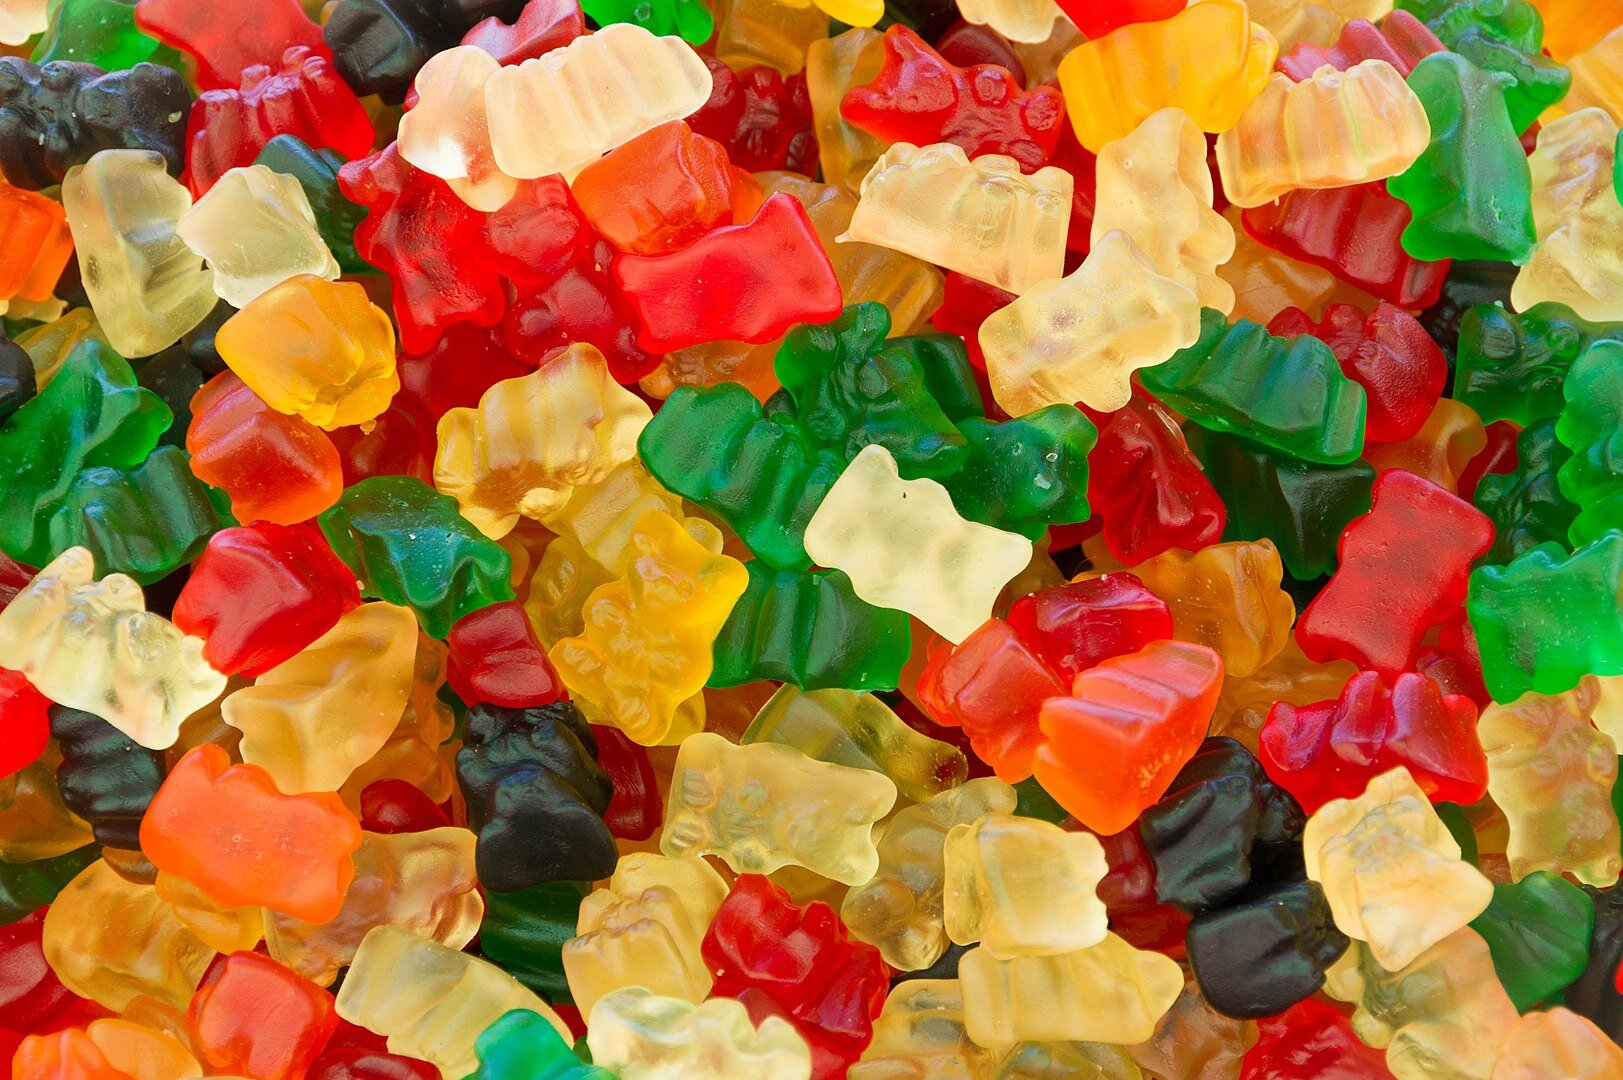 4 Ways CBD Gummies Can Improve Your Day